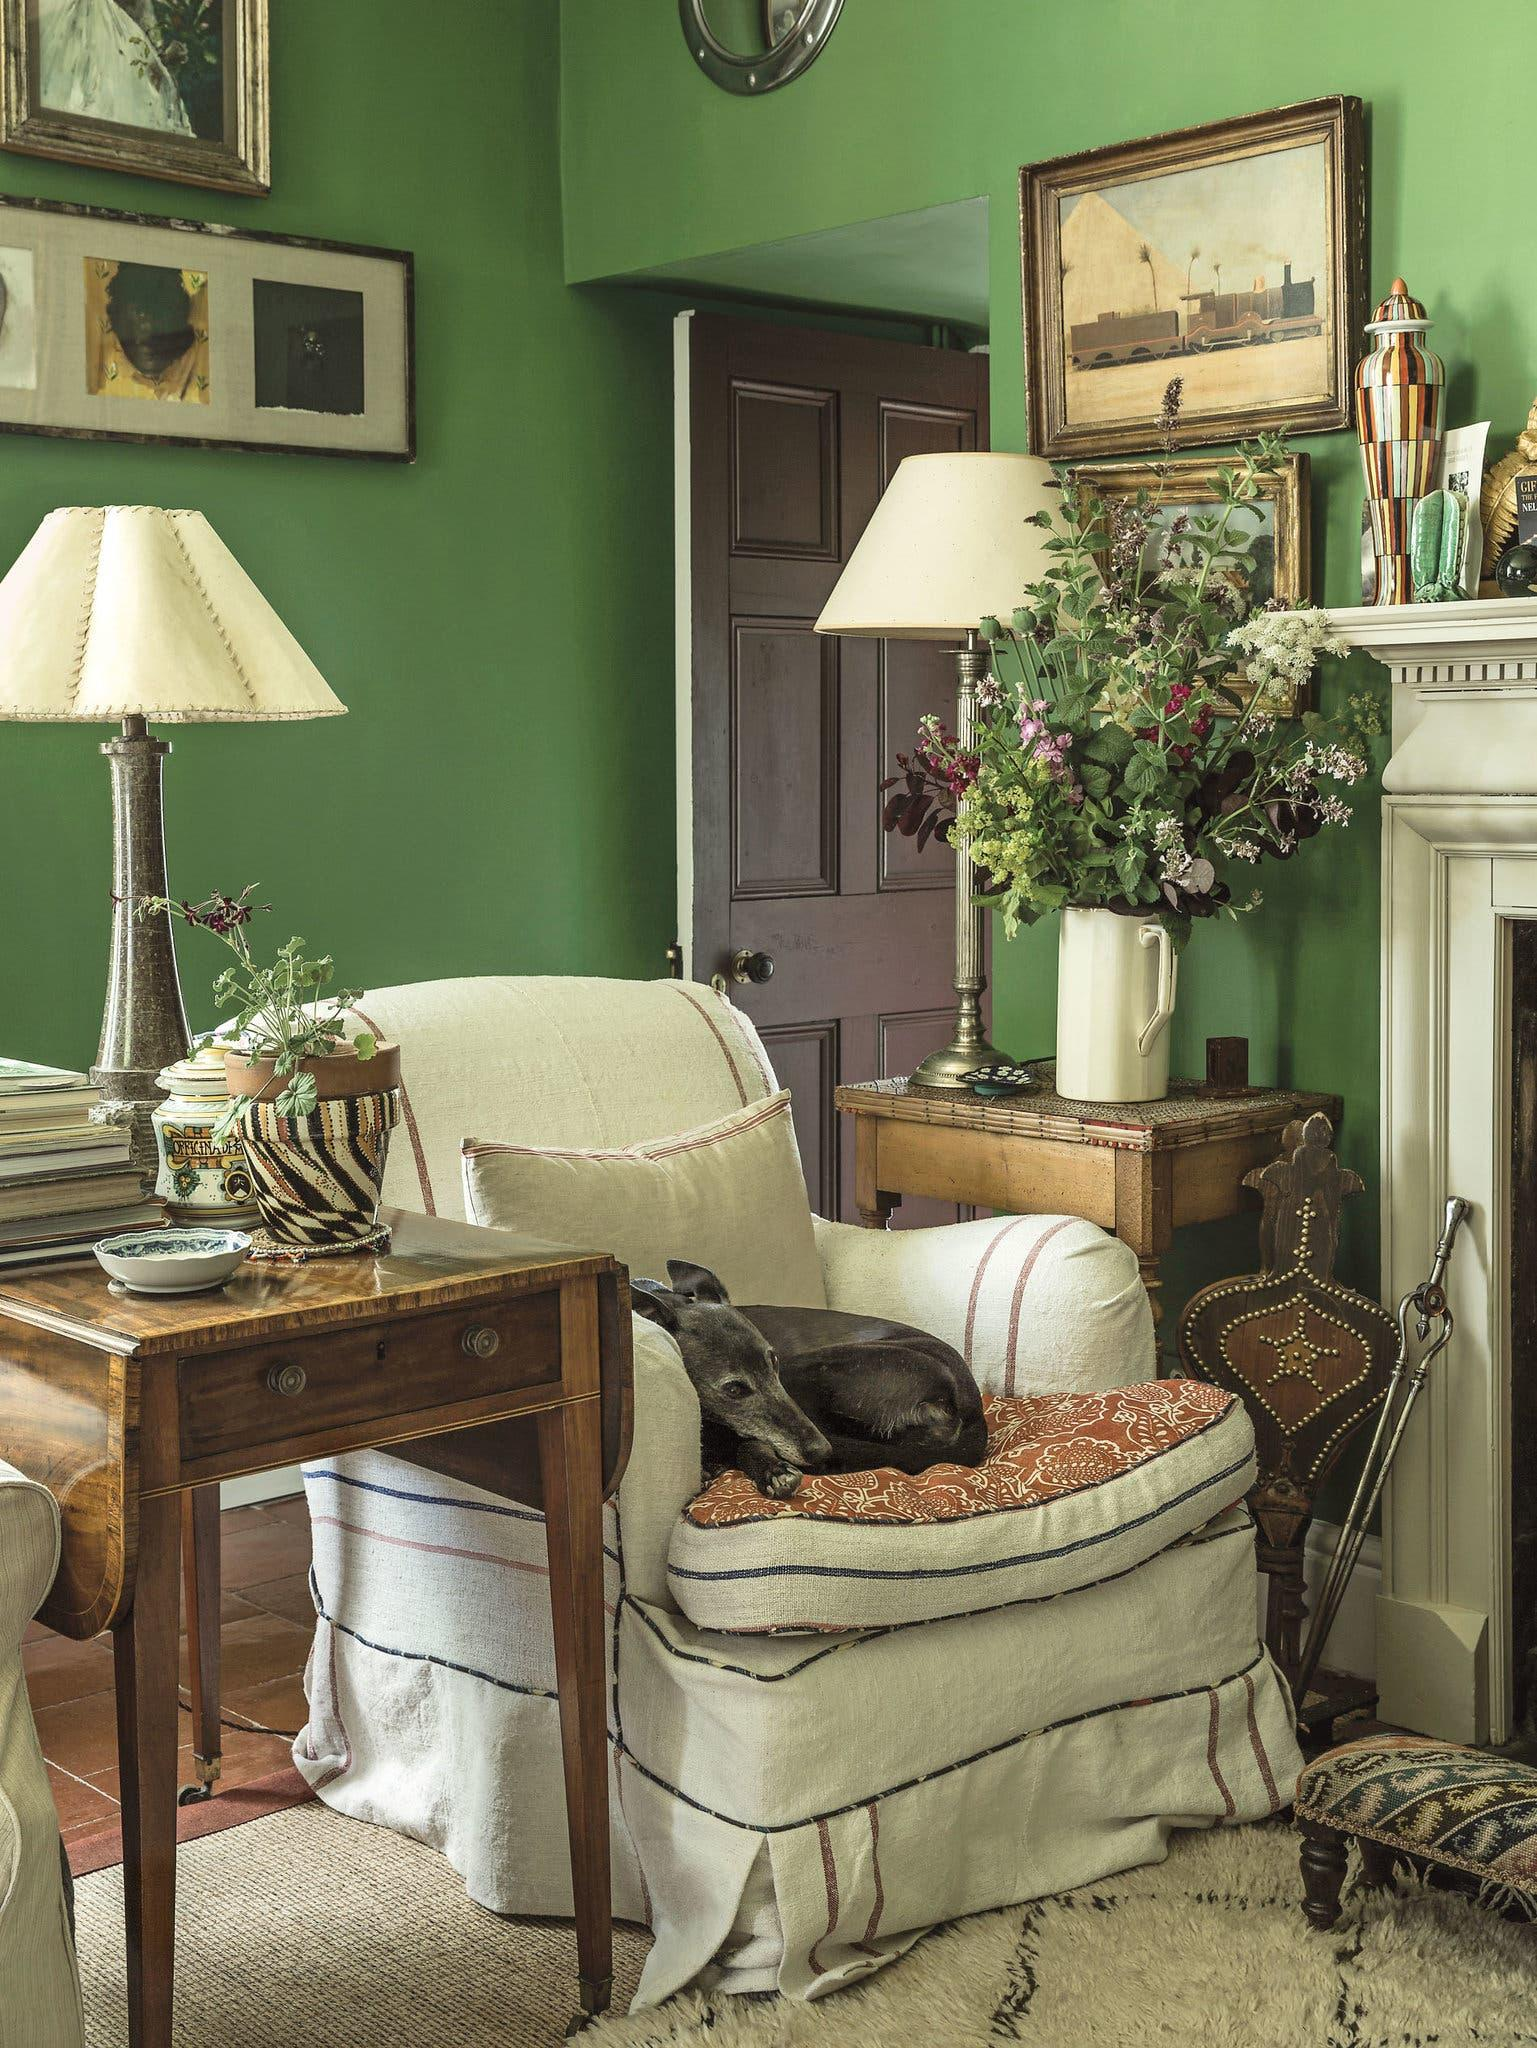 10 Ways To Create English Cottage Charm In Your Home